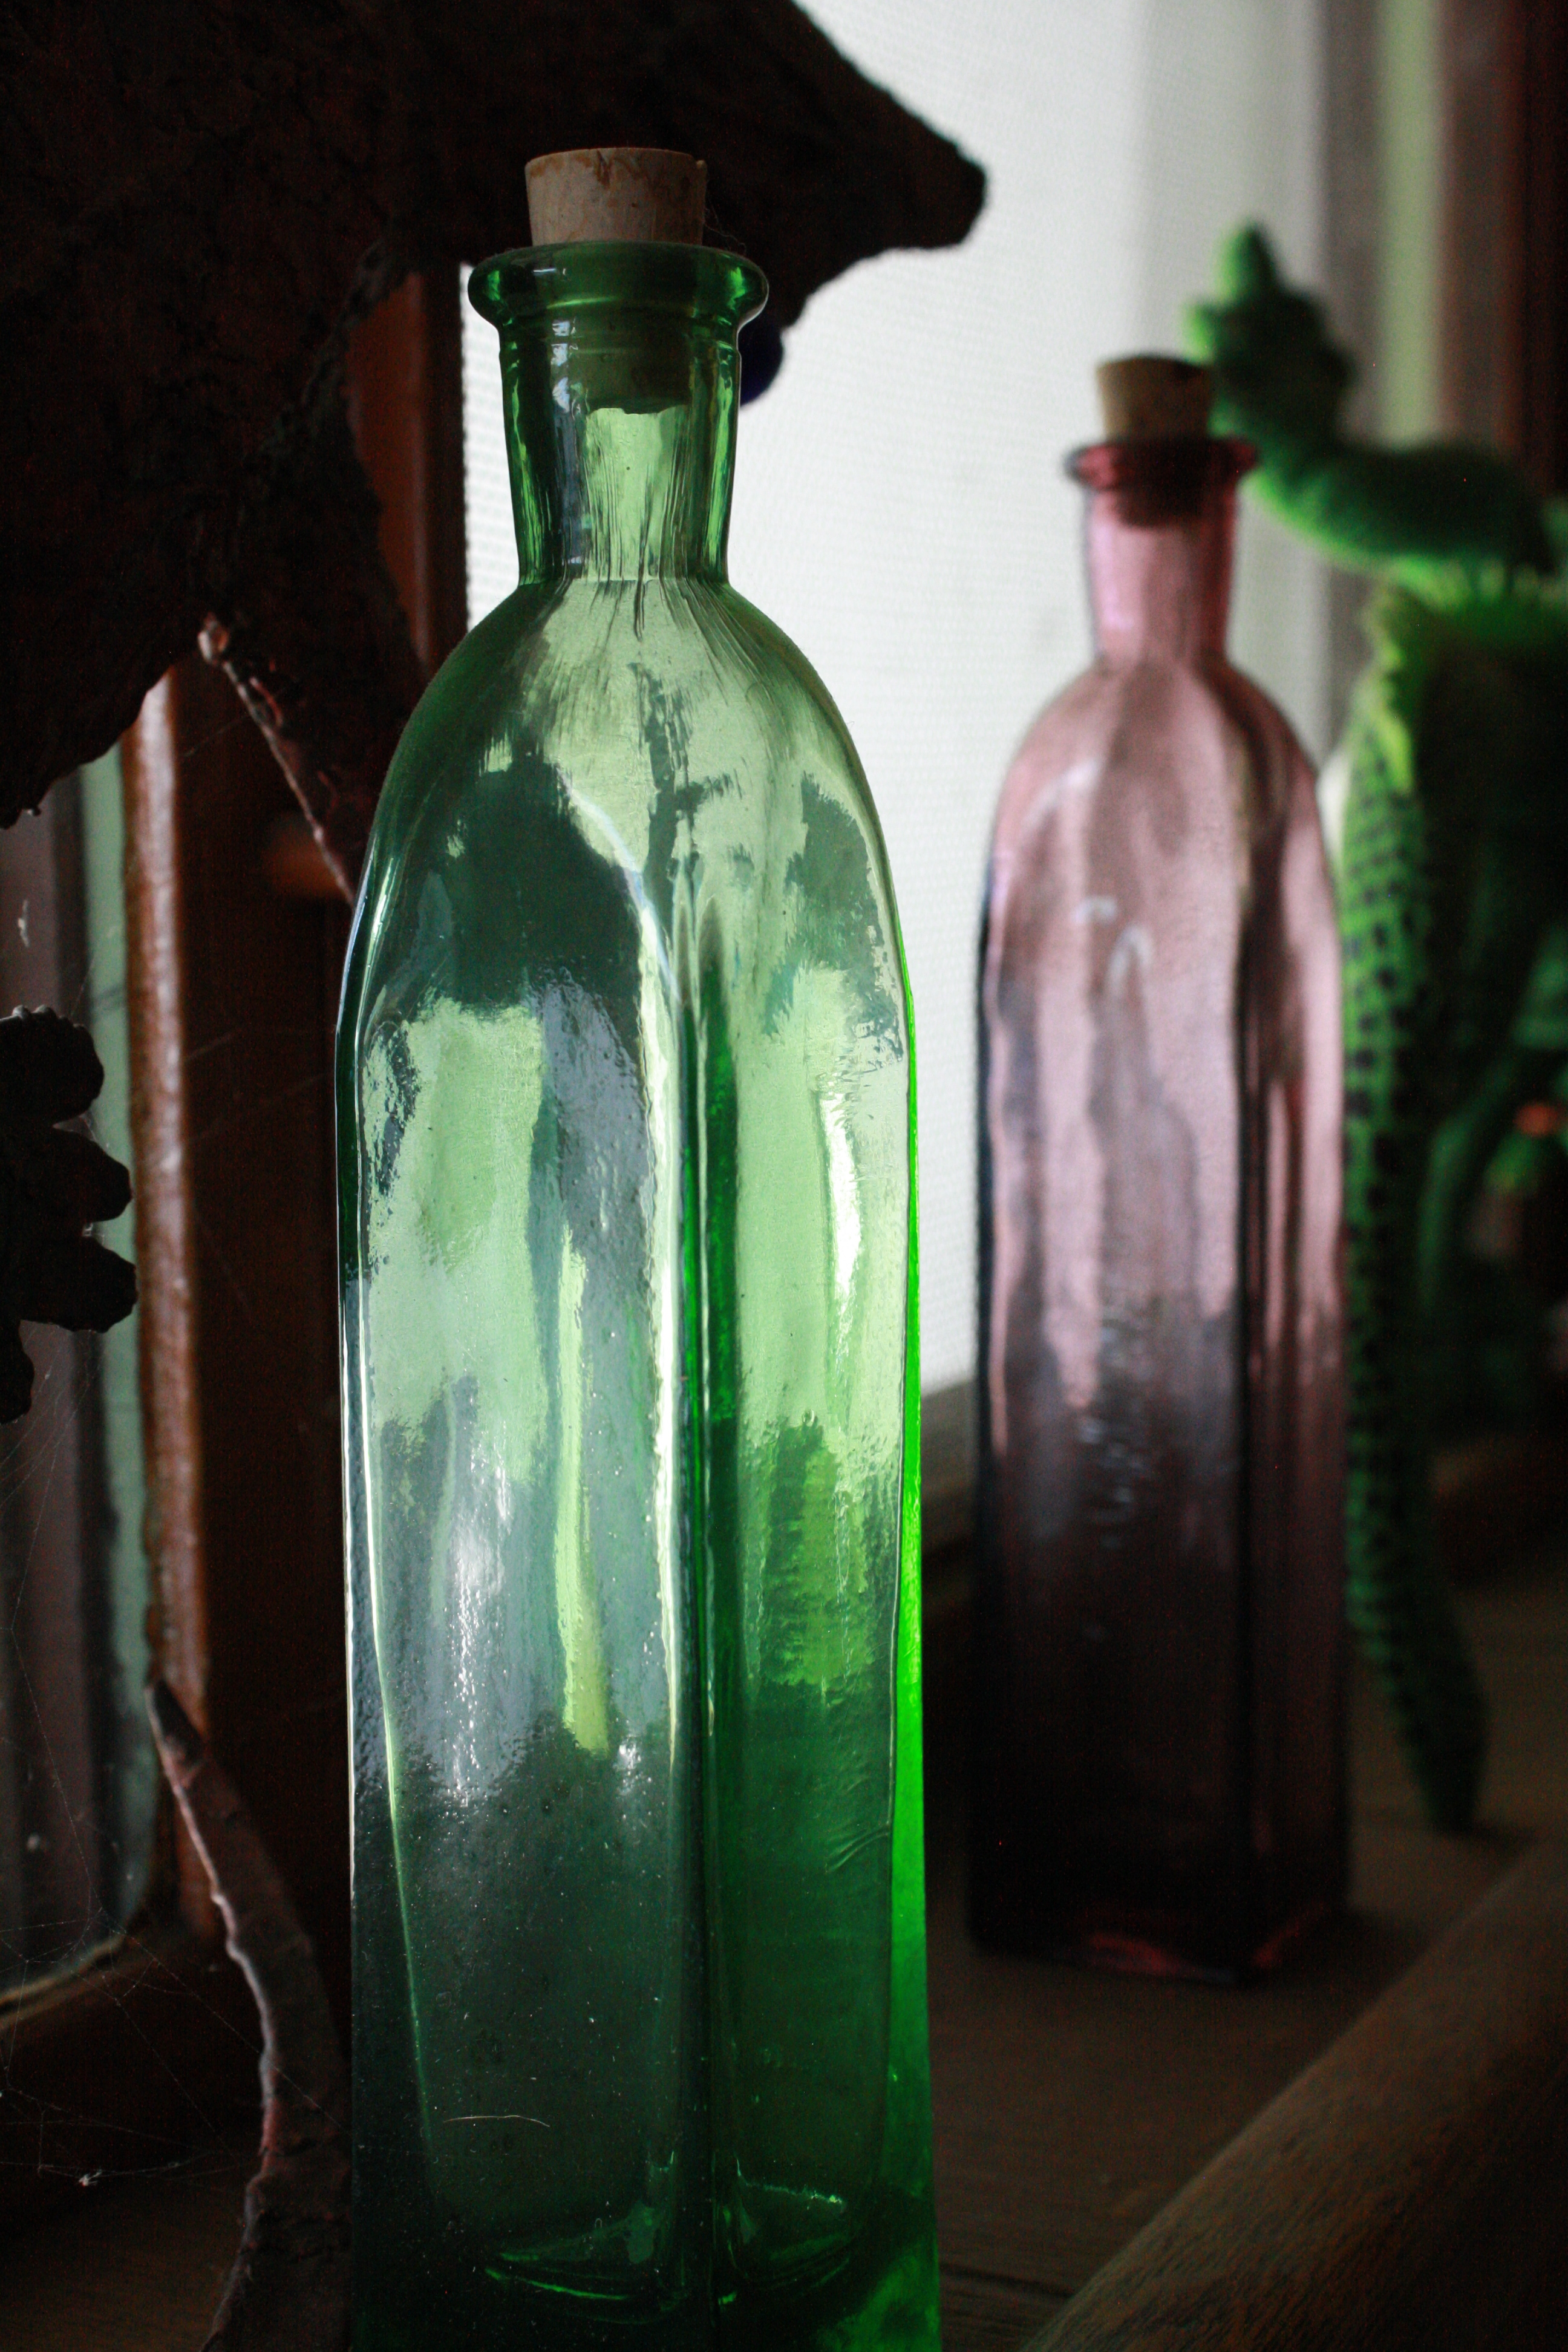 Glass Bottle In Window Sill Picture Free Photograph